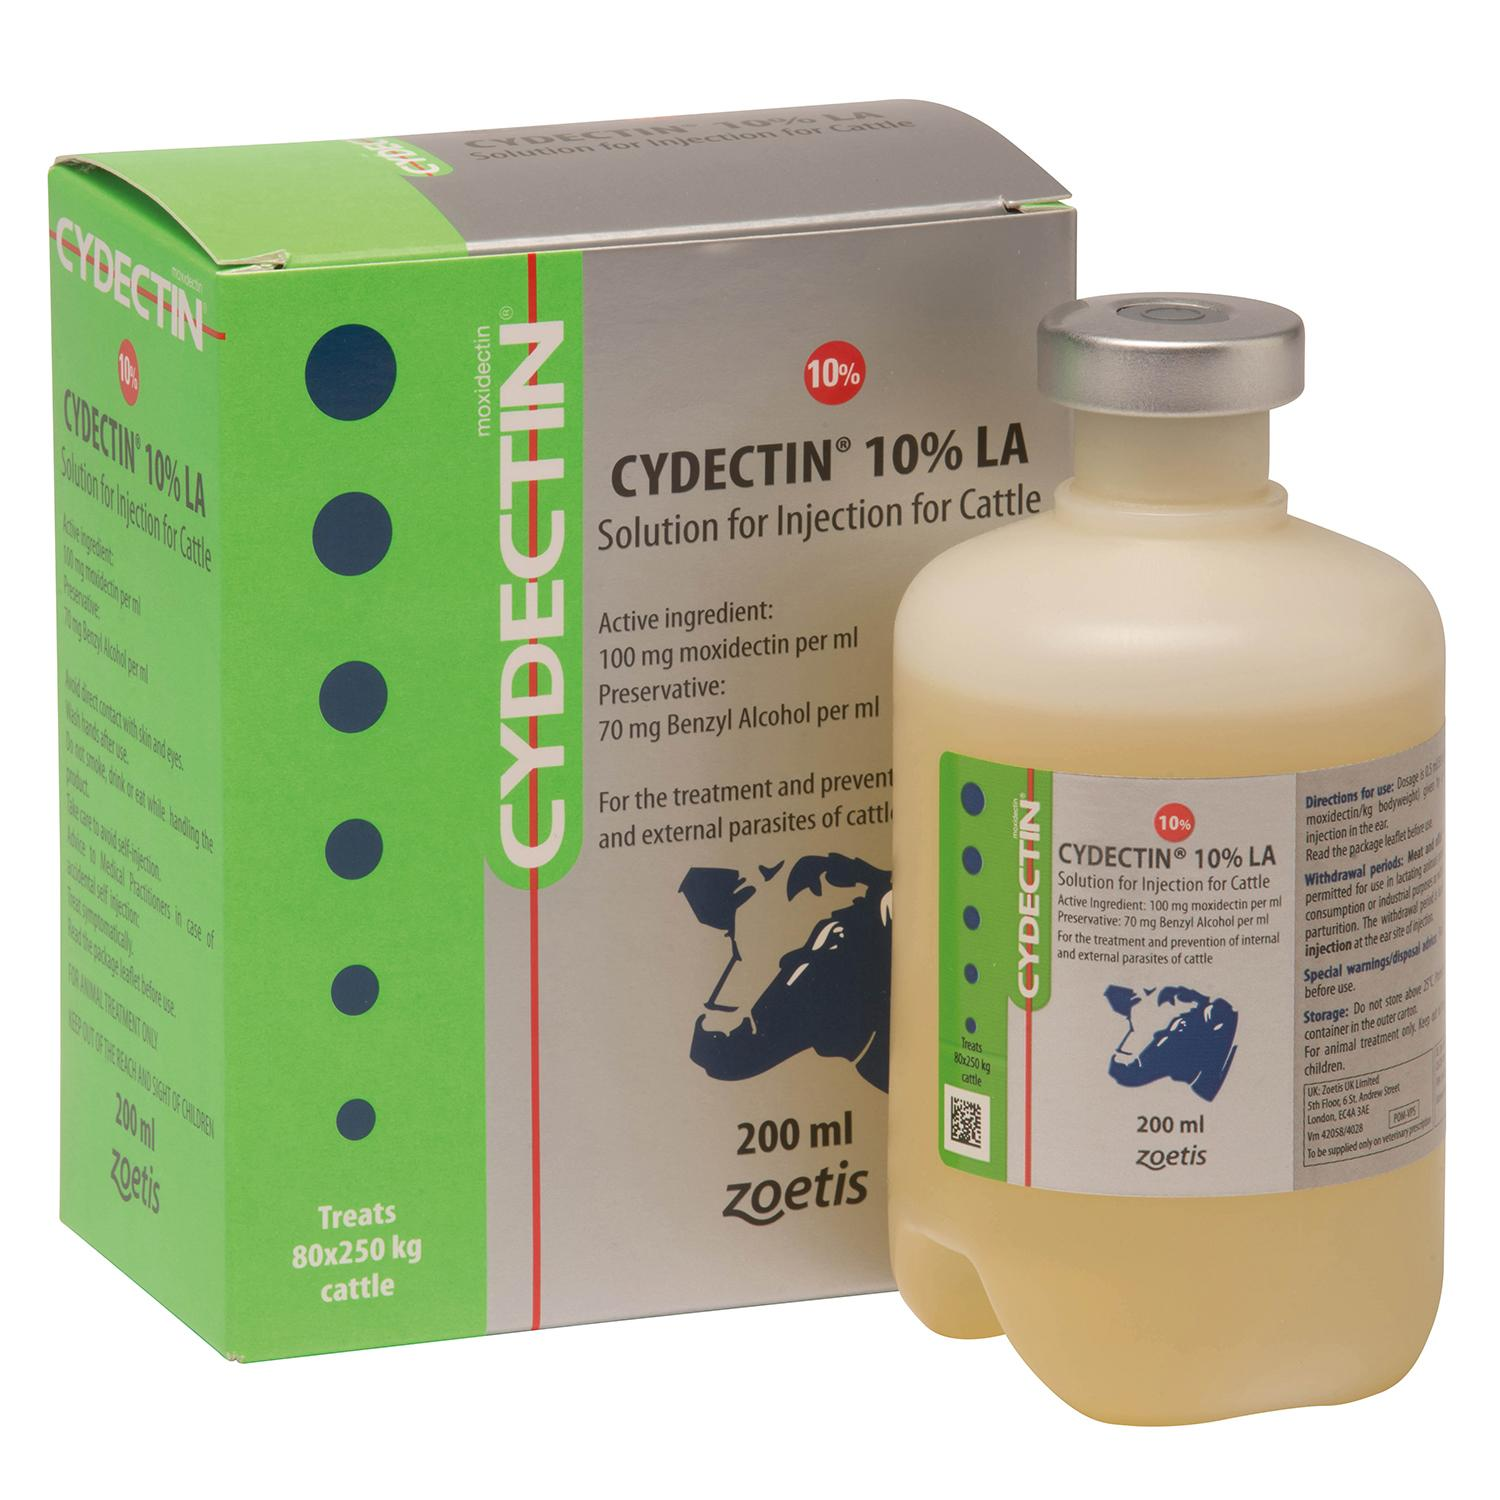 CYDECTIN 10% LA INJECTION